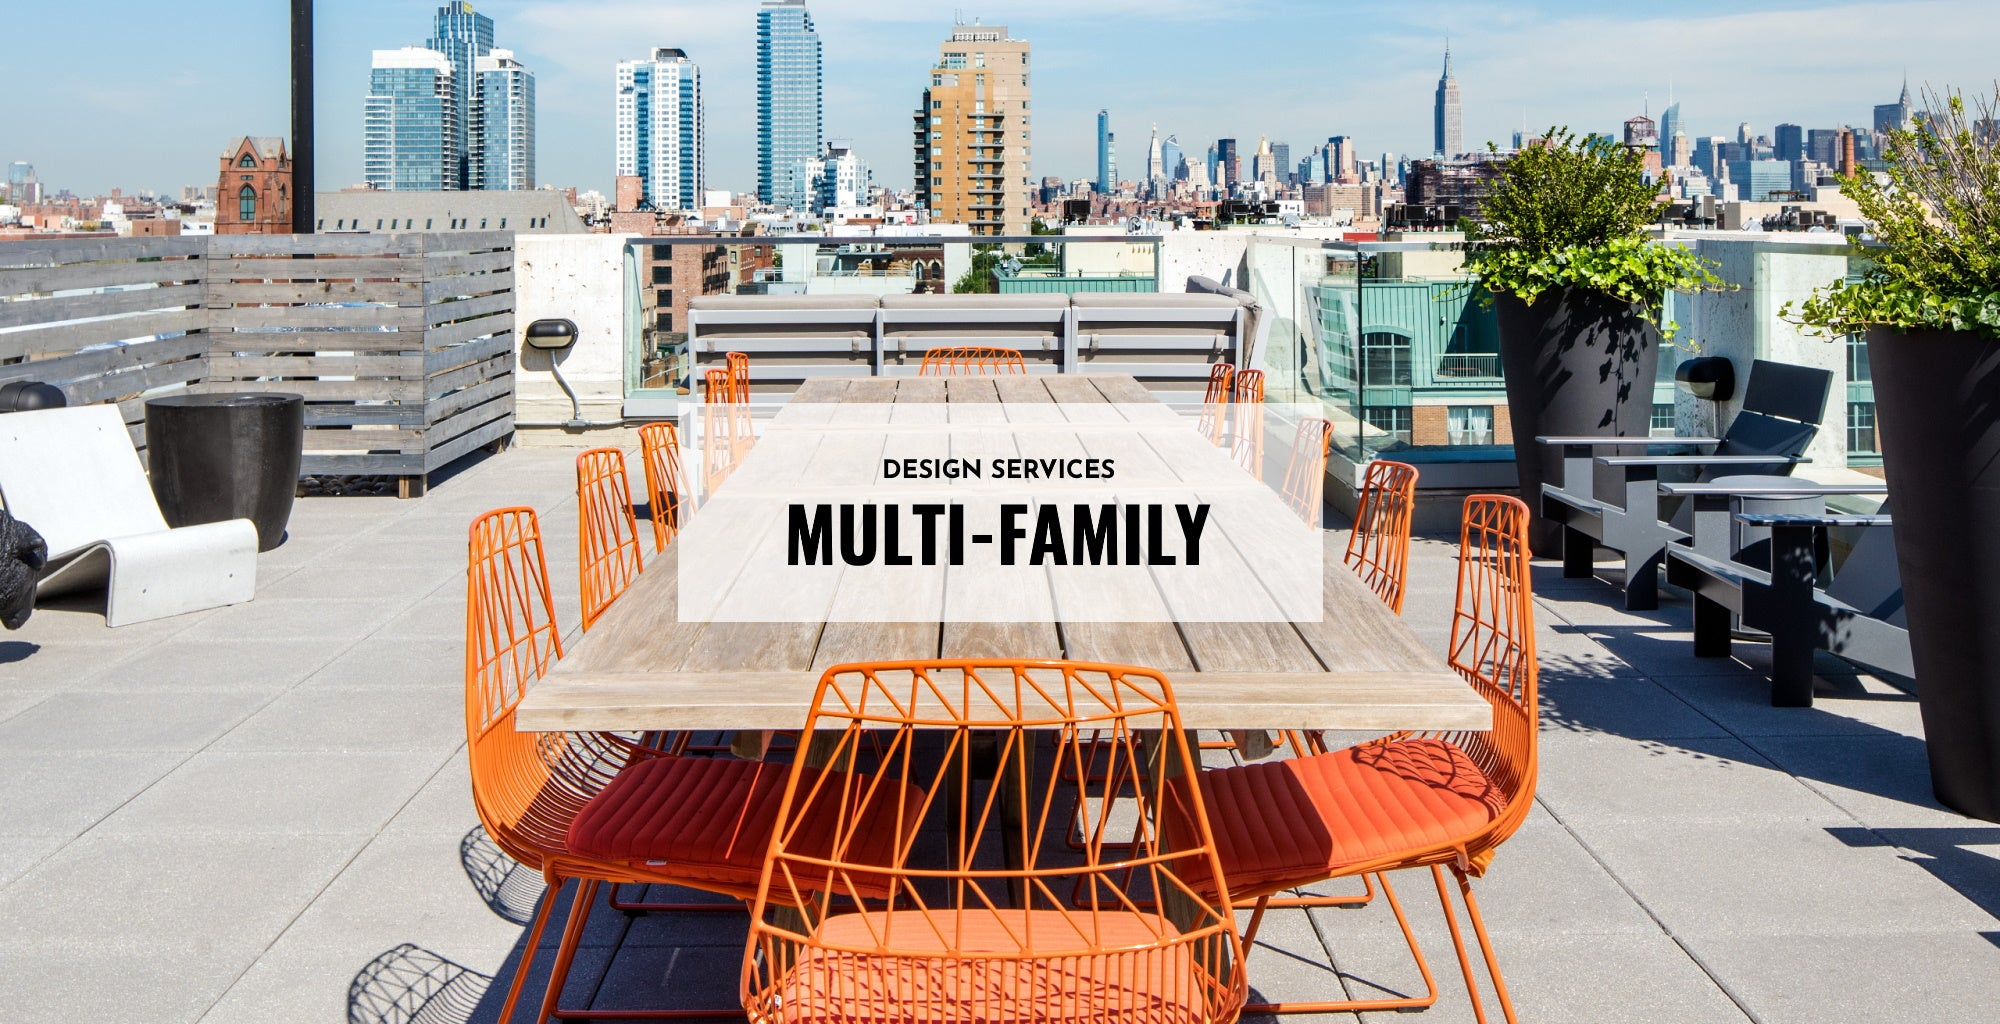 Design Services - Multi-Family